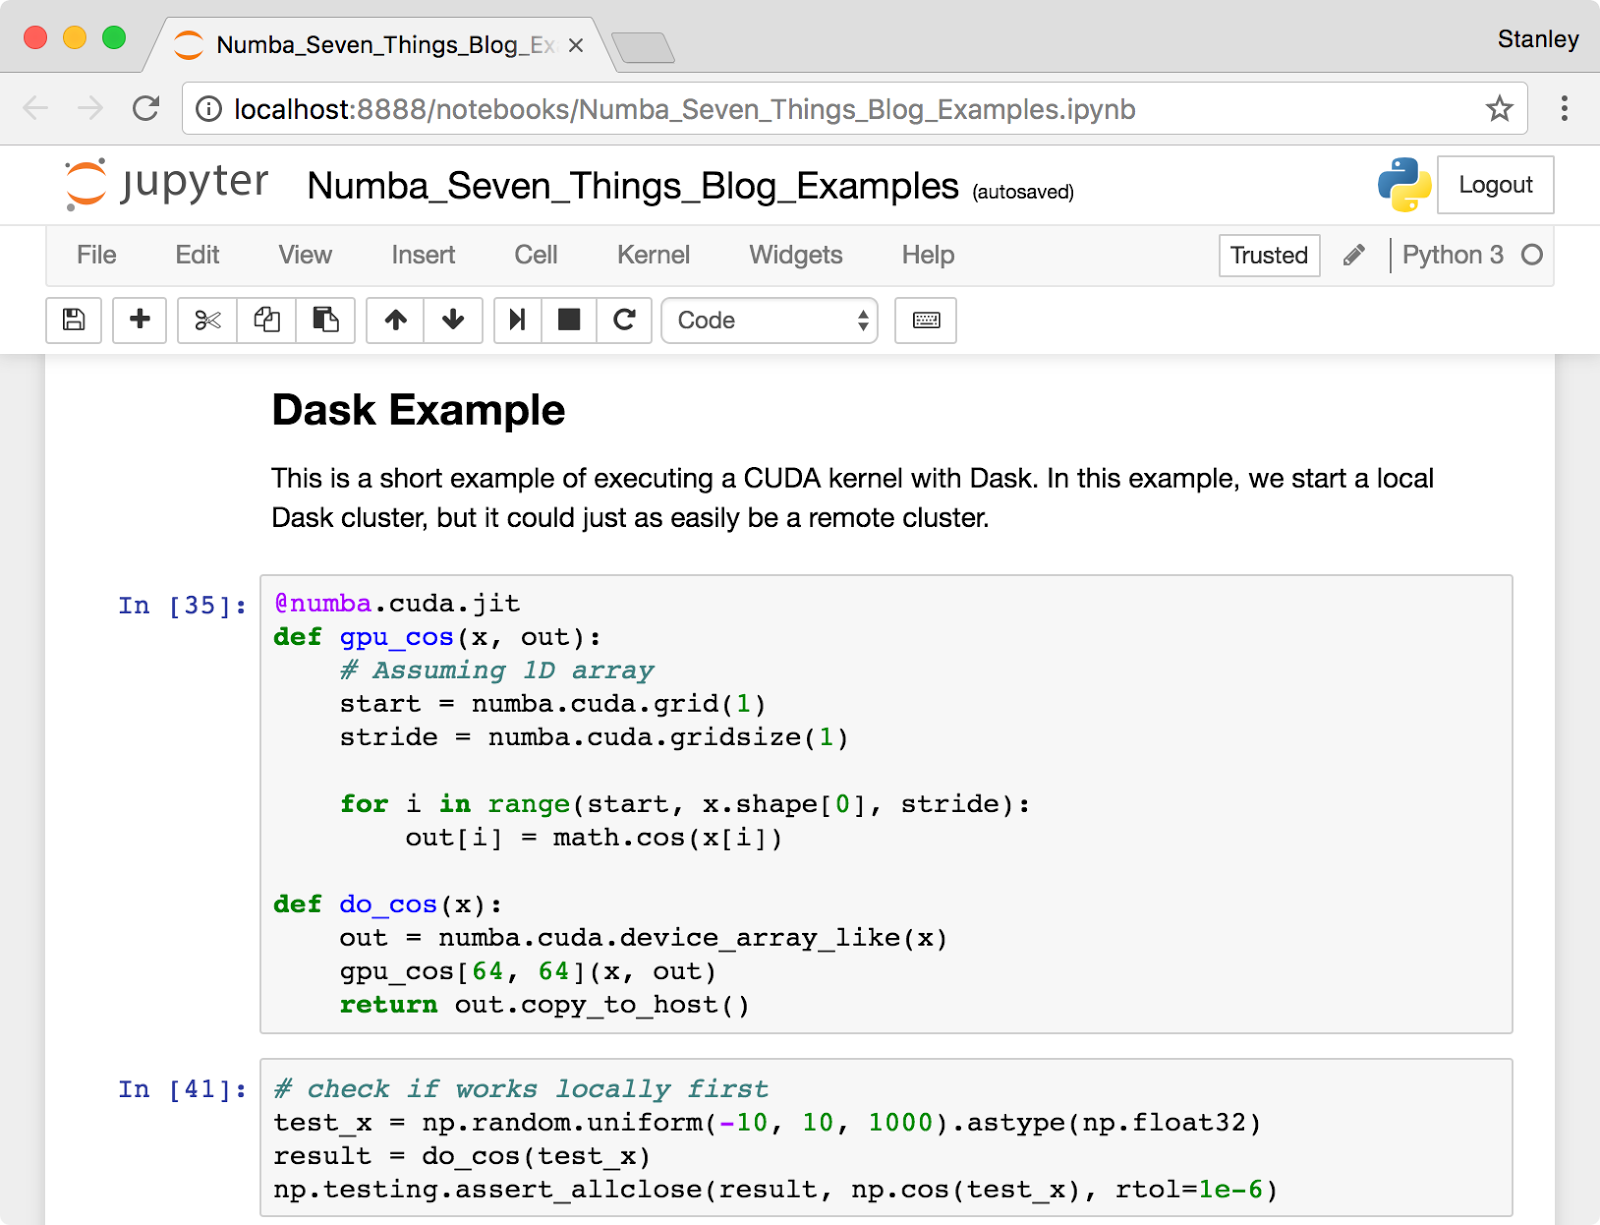 Screenshot of the Jupyter Notebook used in this post showing some CUDA Python code.